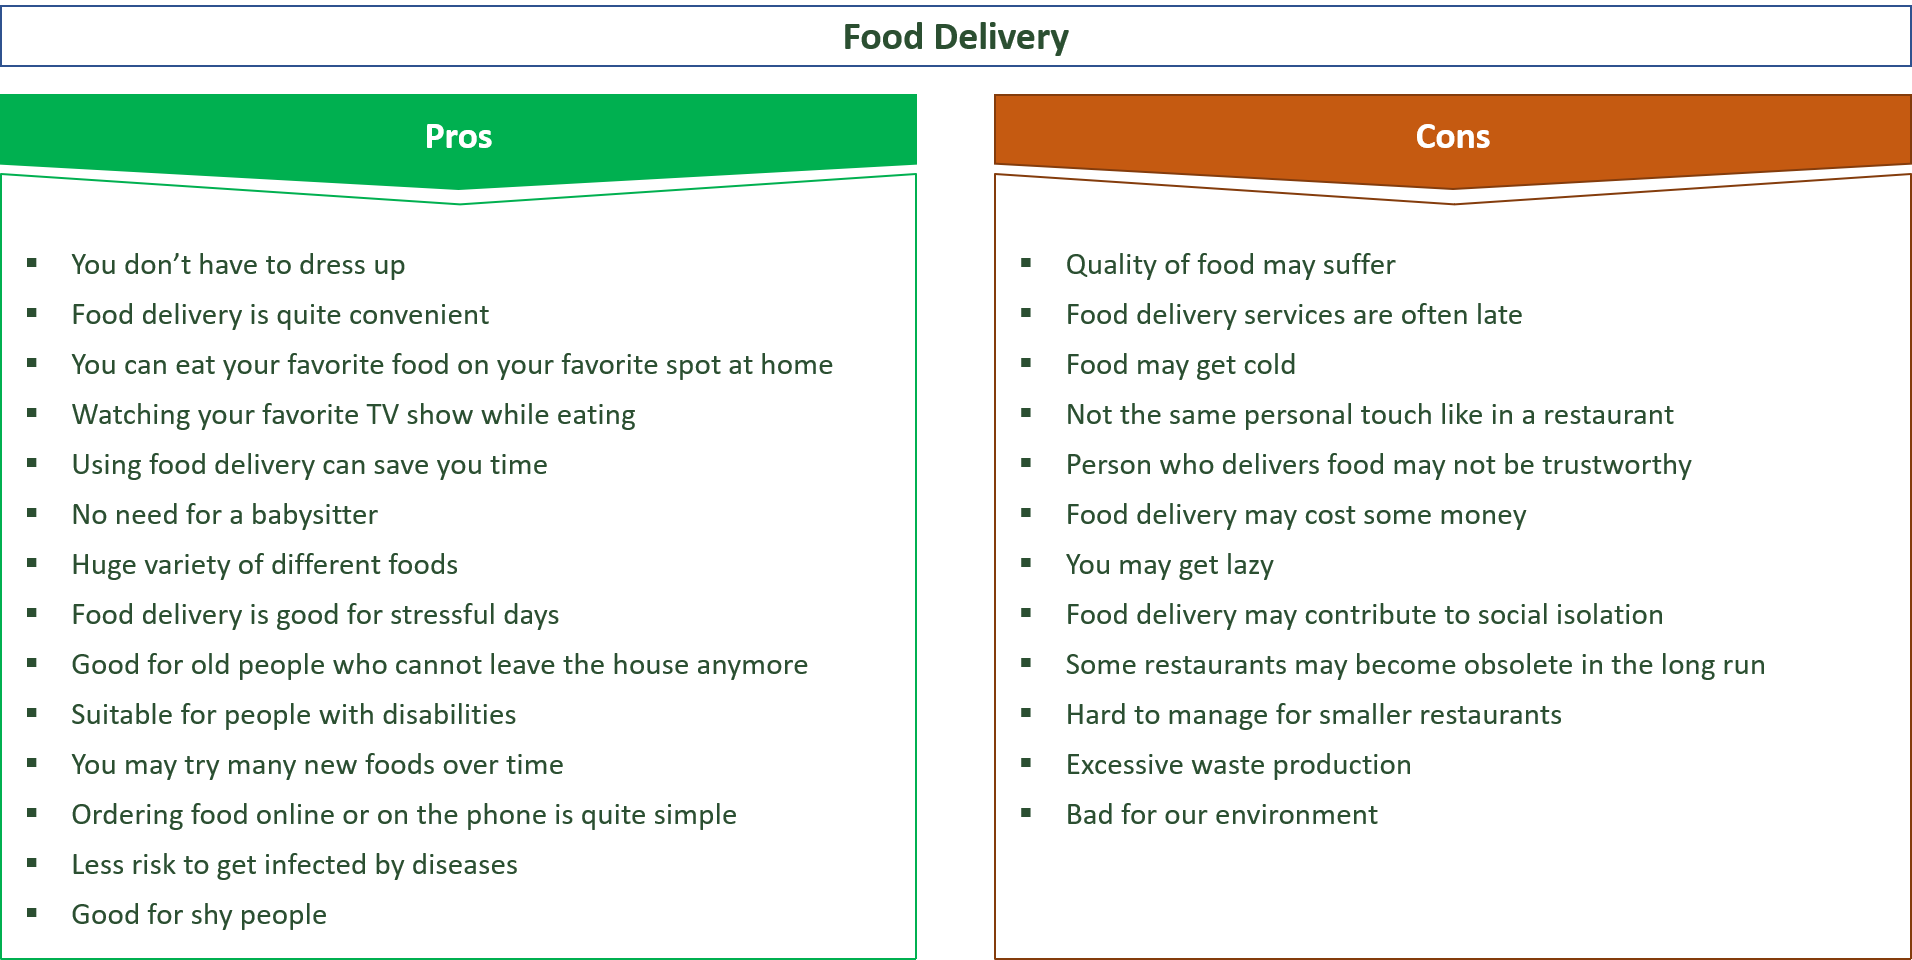 advantages and disadvantages of food delivery